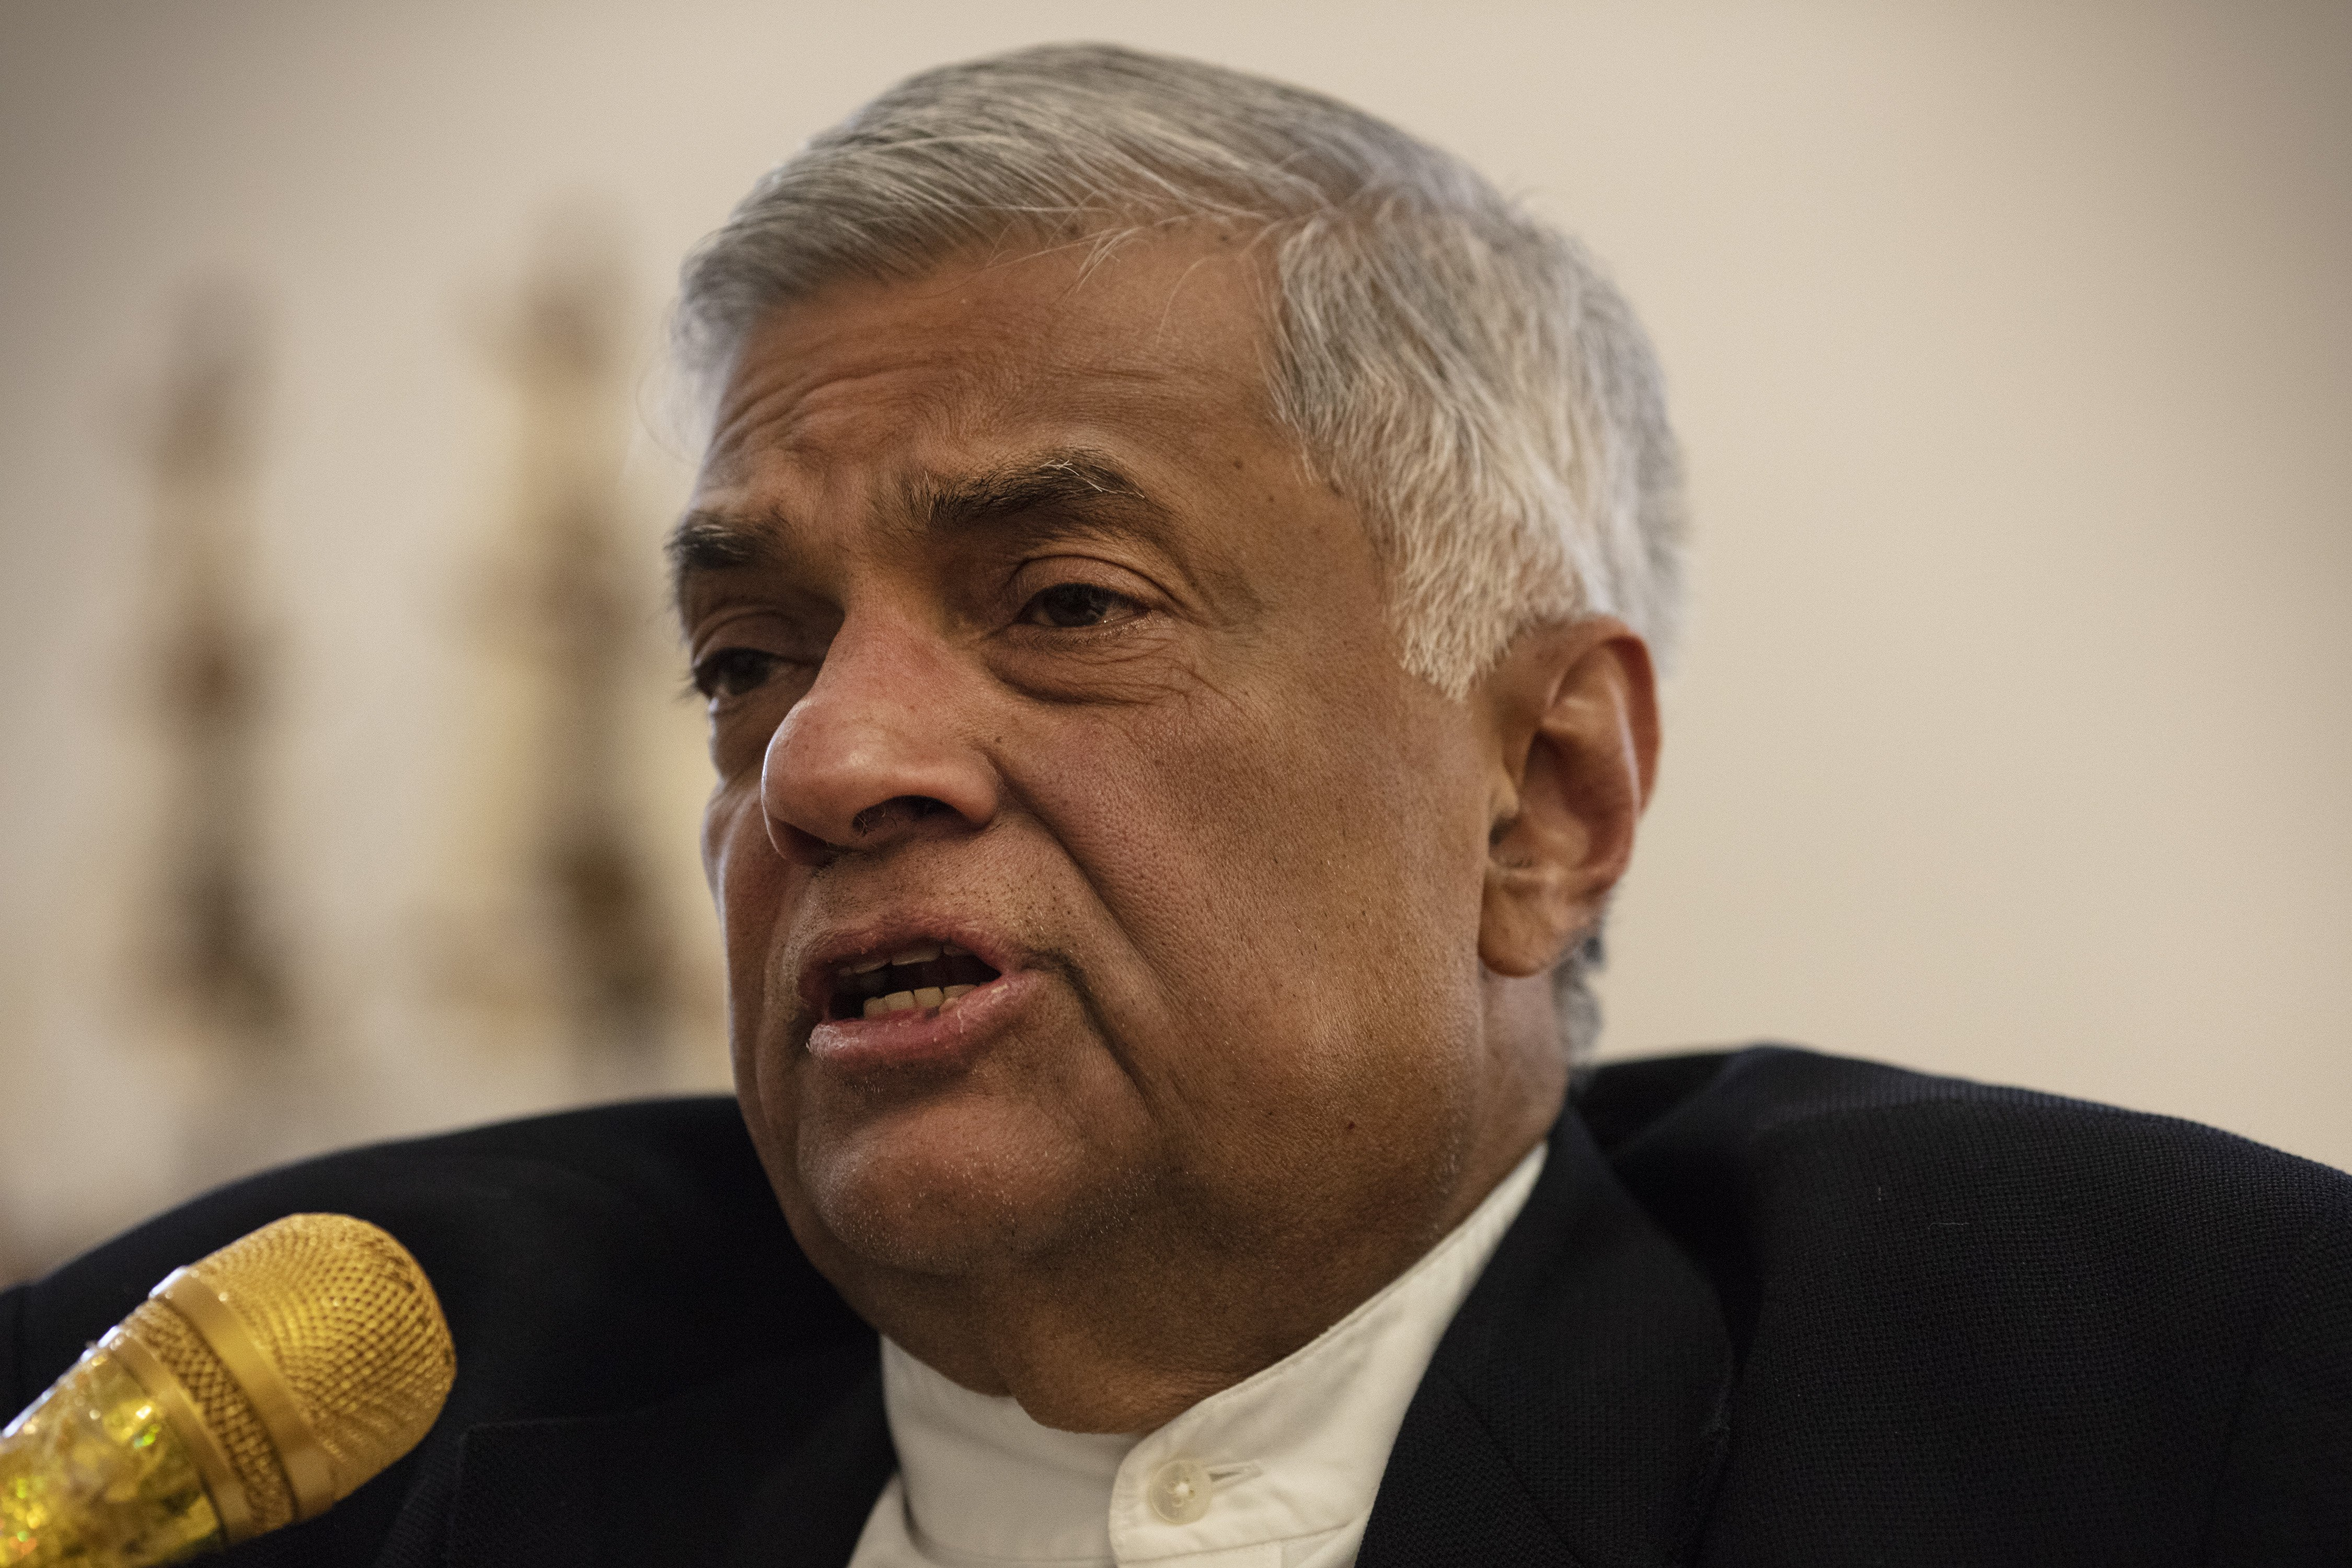 Sri Lanka Prime Minister Ranil Wickremesinghe at his office | Photo: Getty Images